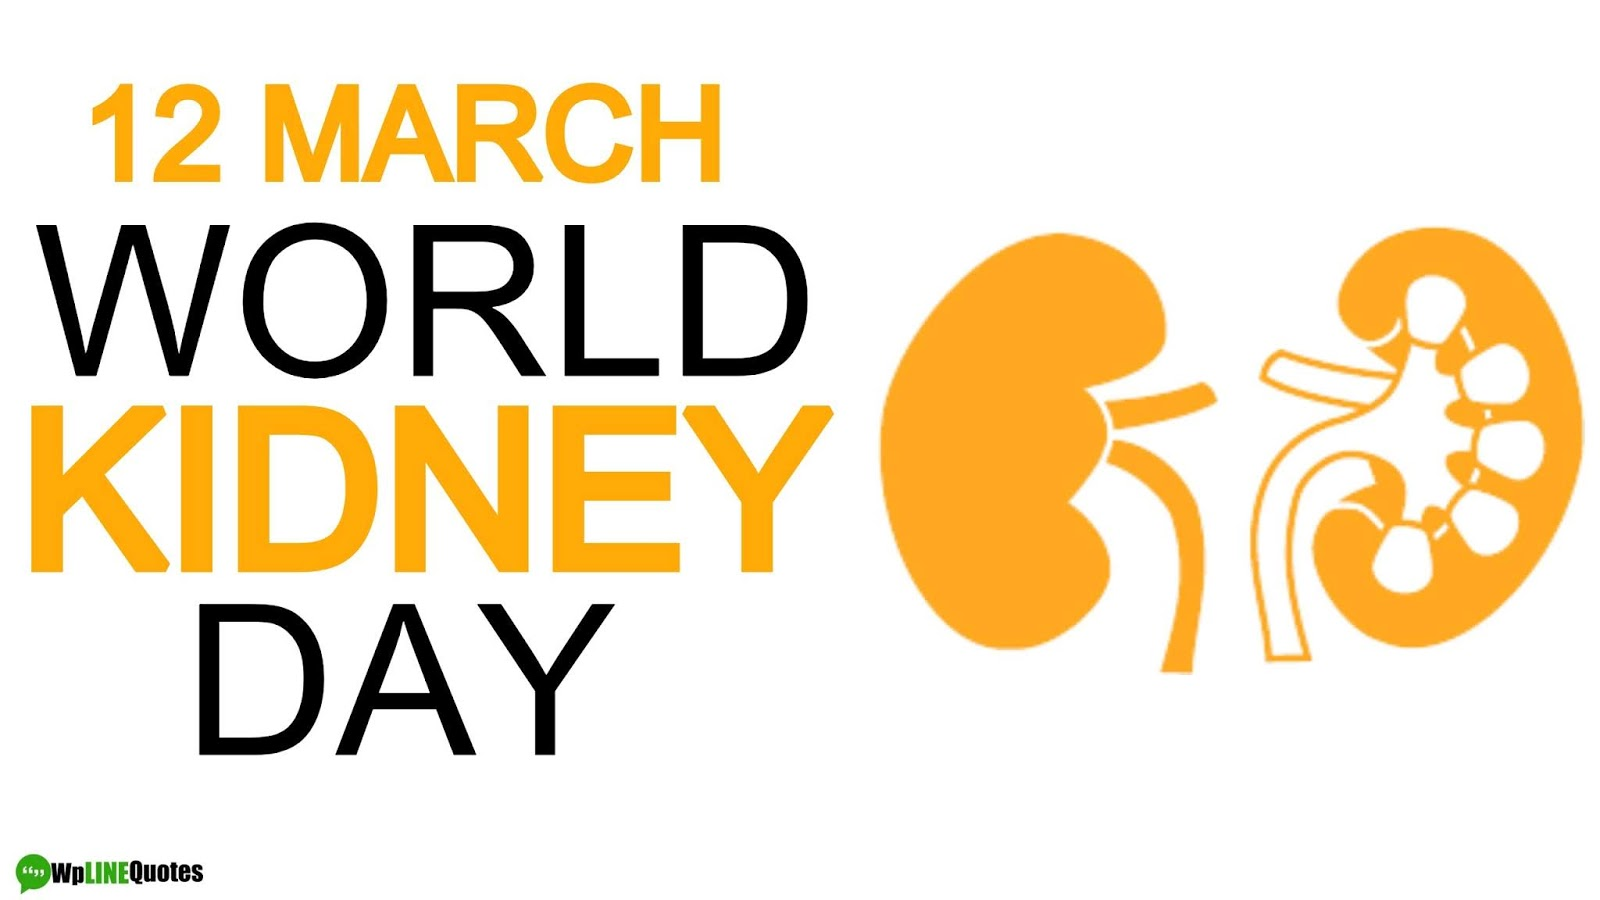 World Kidney Day Quotes, Sayings, Slogans, Poster, Theme